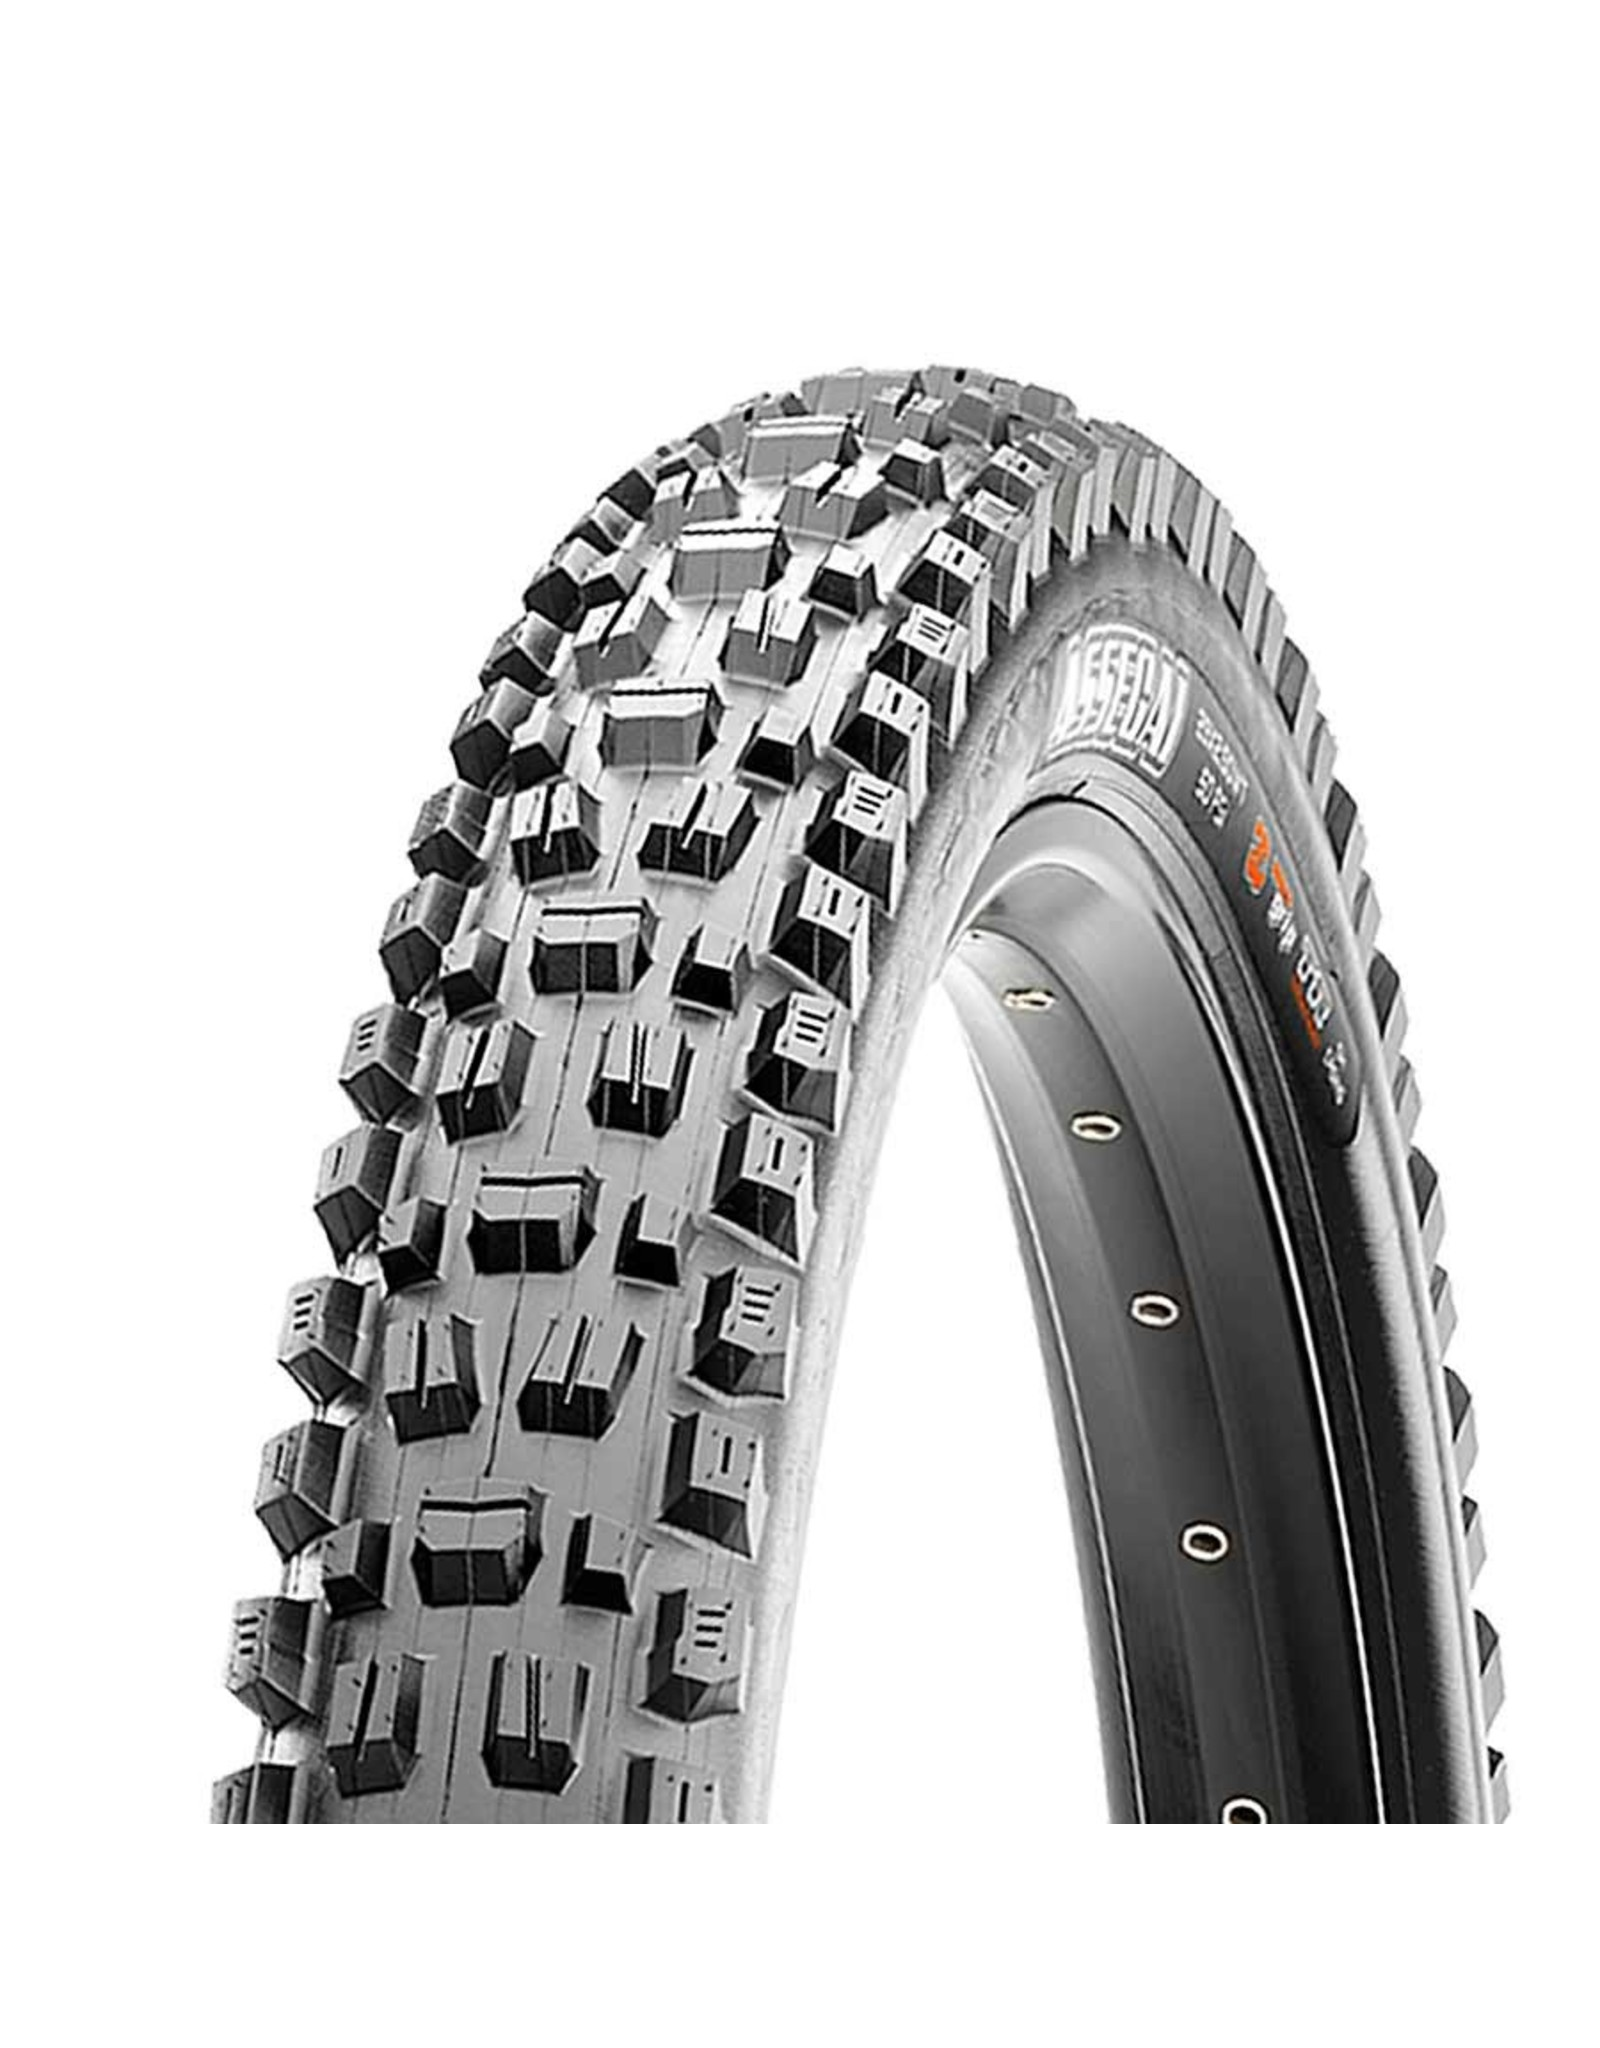 Maxxis, Assegai, Tire, 29''x2.50, Folding, Tubeless Ready, Dual, EXO, Wide Trail, 60TPI, Black